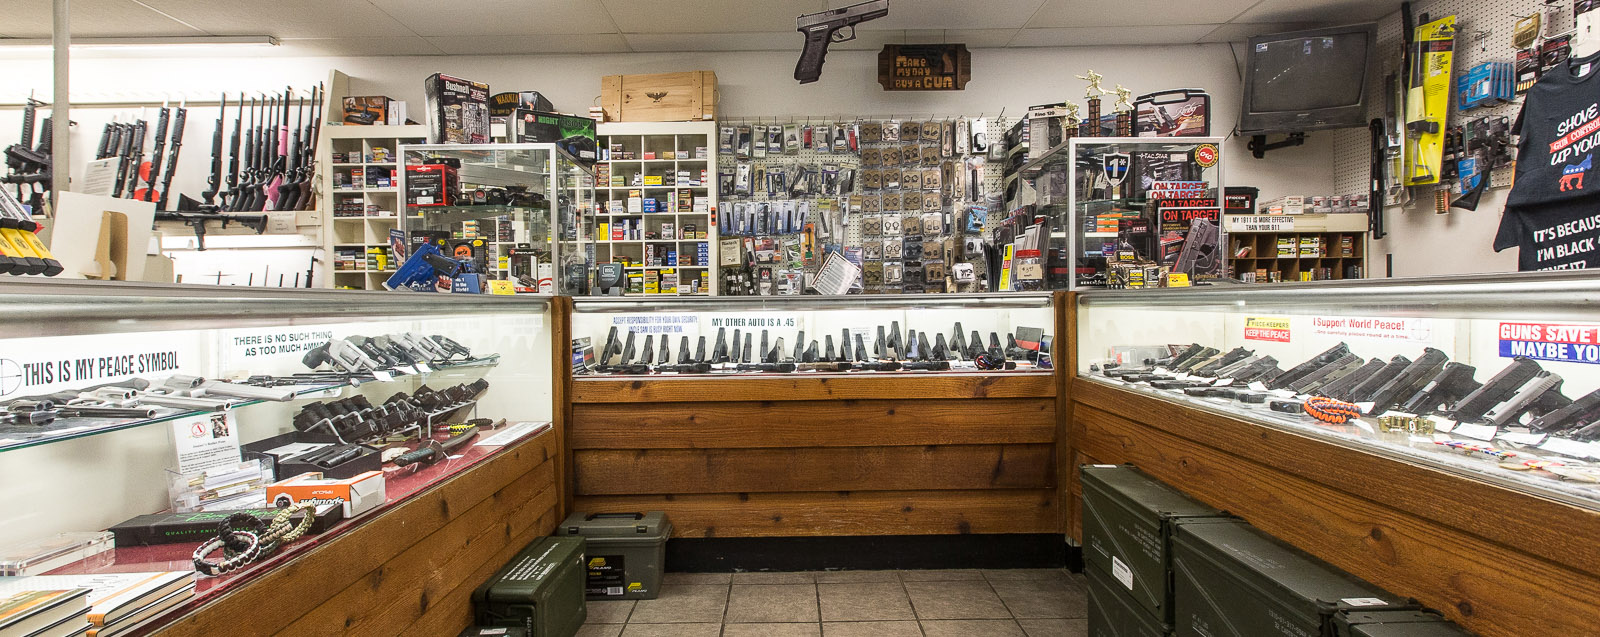 Image Result For Pawn Shop Guns